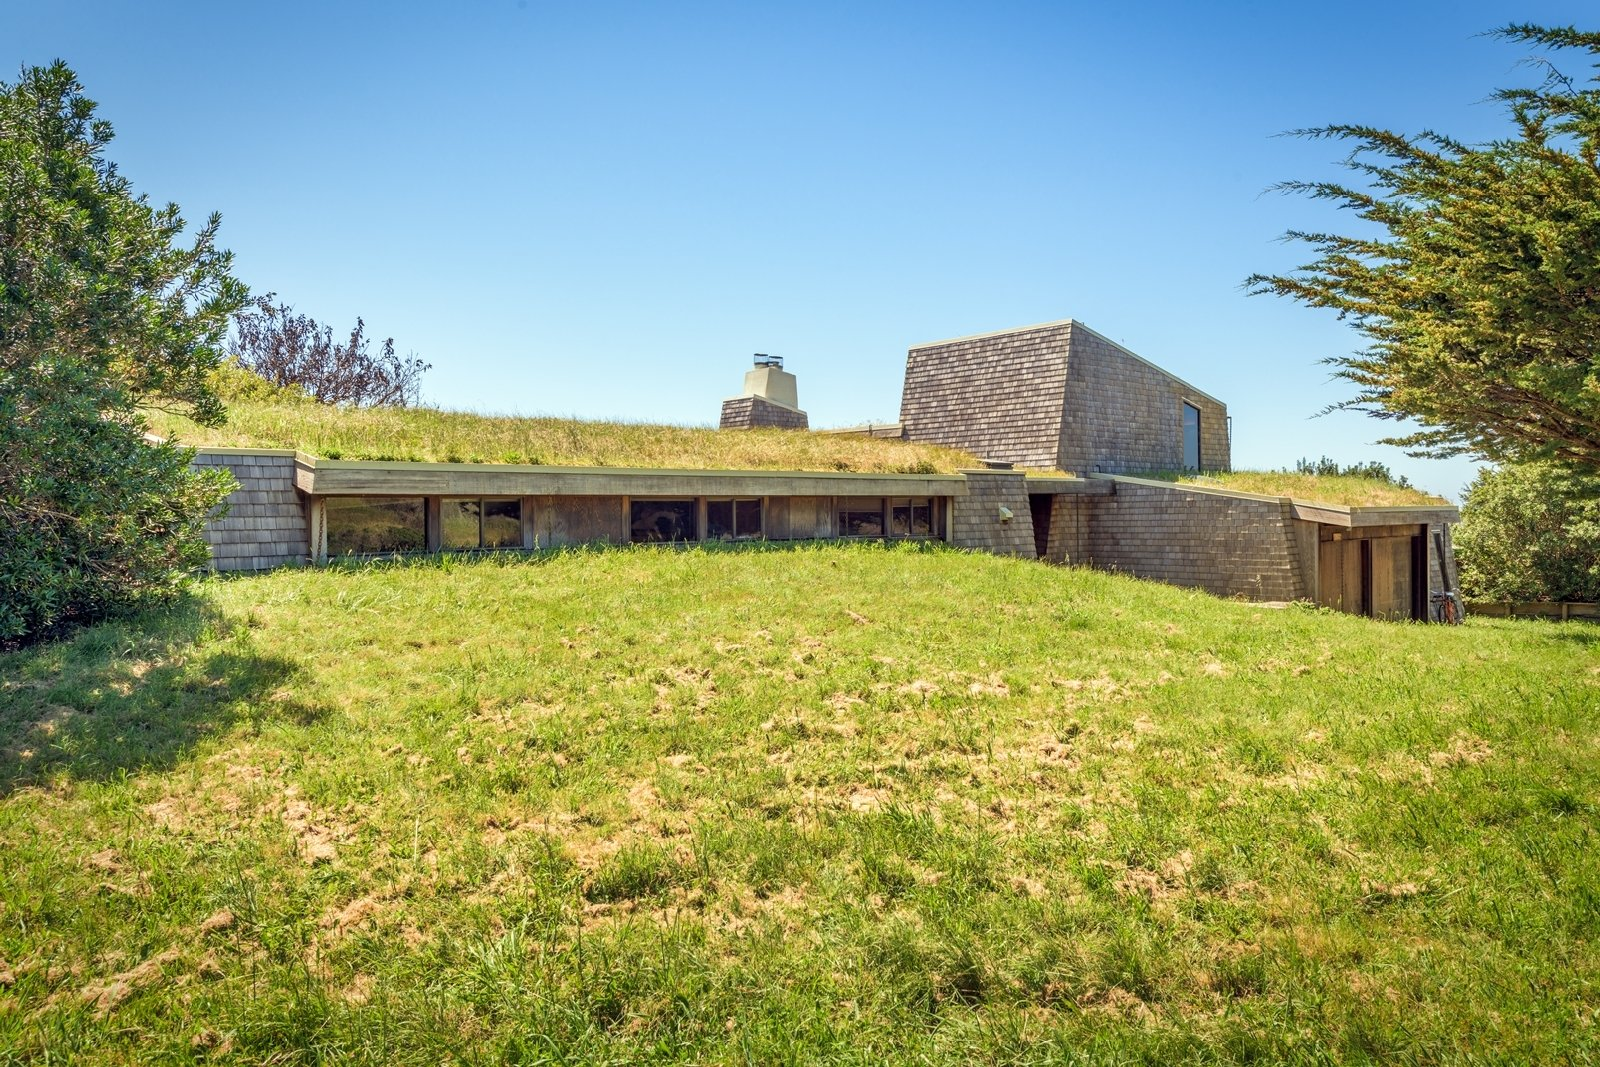 Exterior, Shingles Roof Material, House Building Type, and Wood Siding Material The property is just a short stroll from a network of interconnected trails.  Photos from A Sea Ranch Stunner With a Green Roof Asks $1.3M